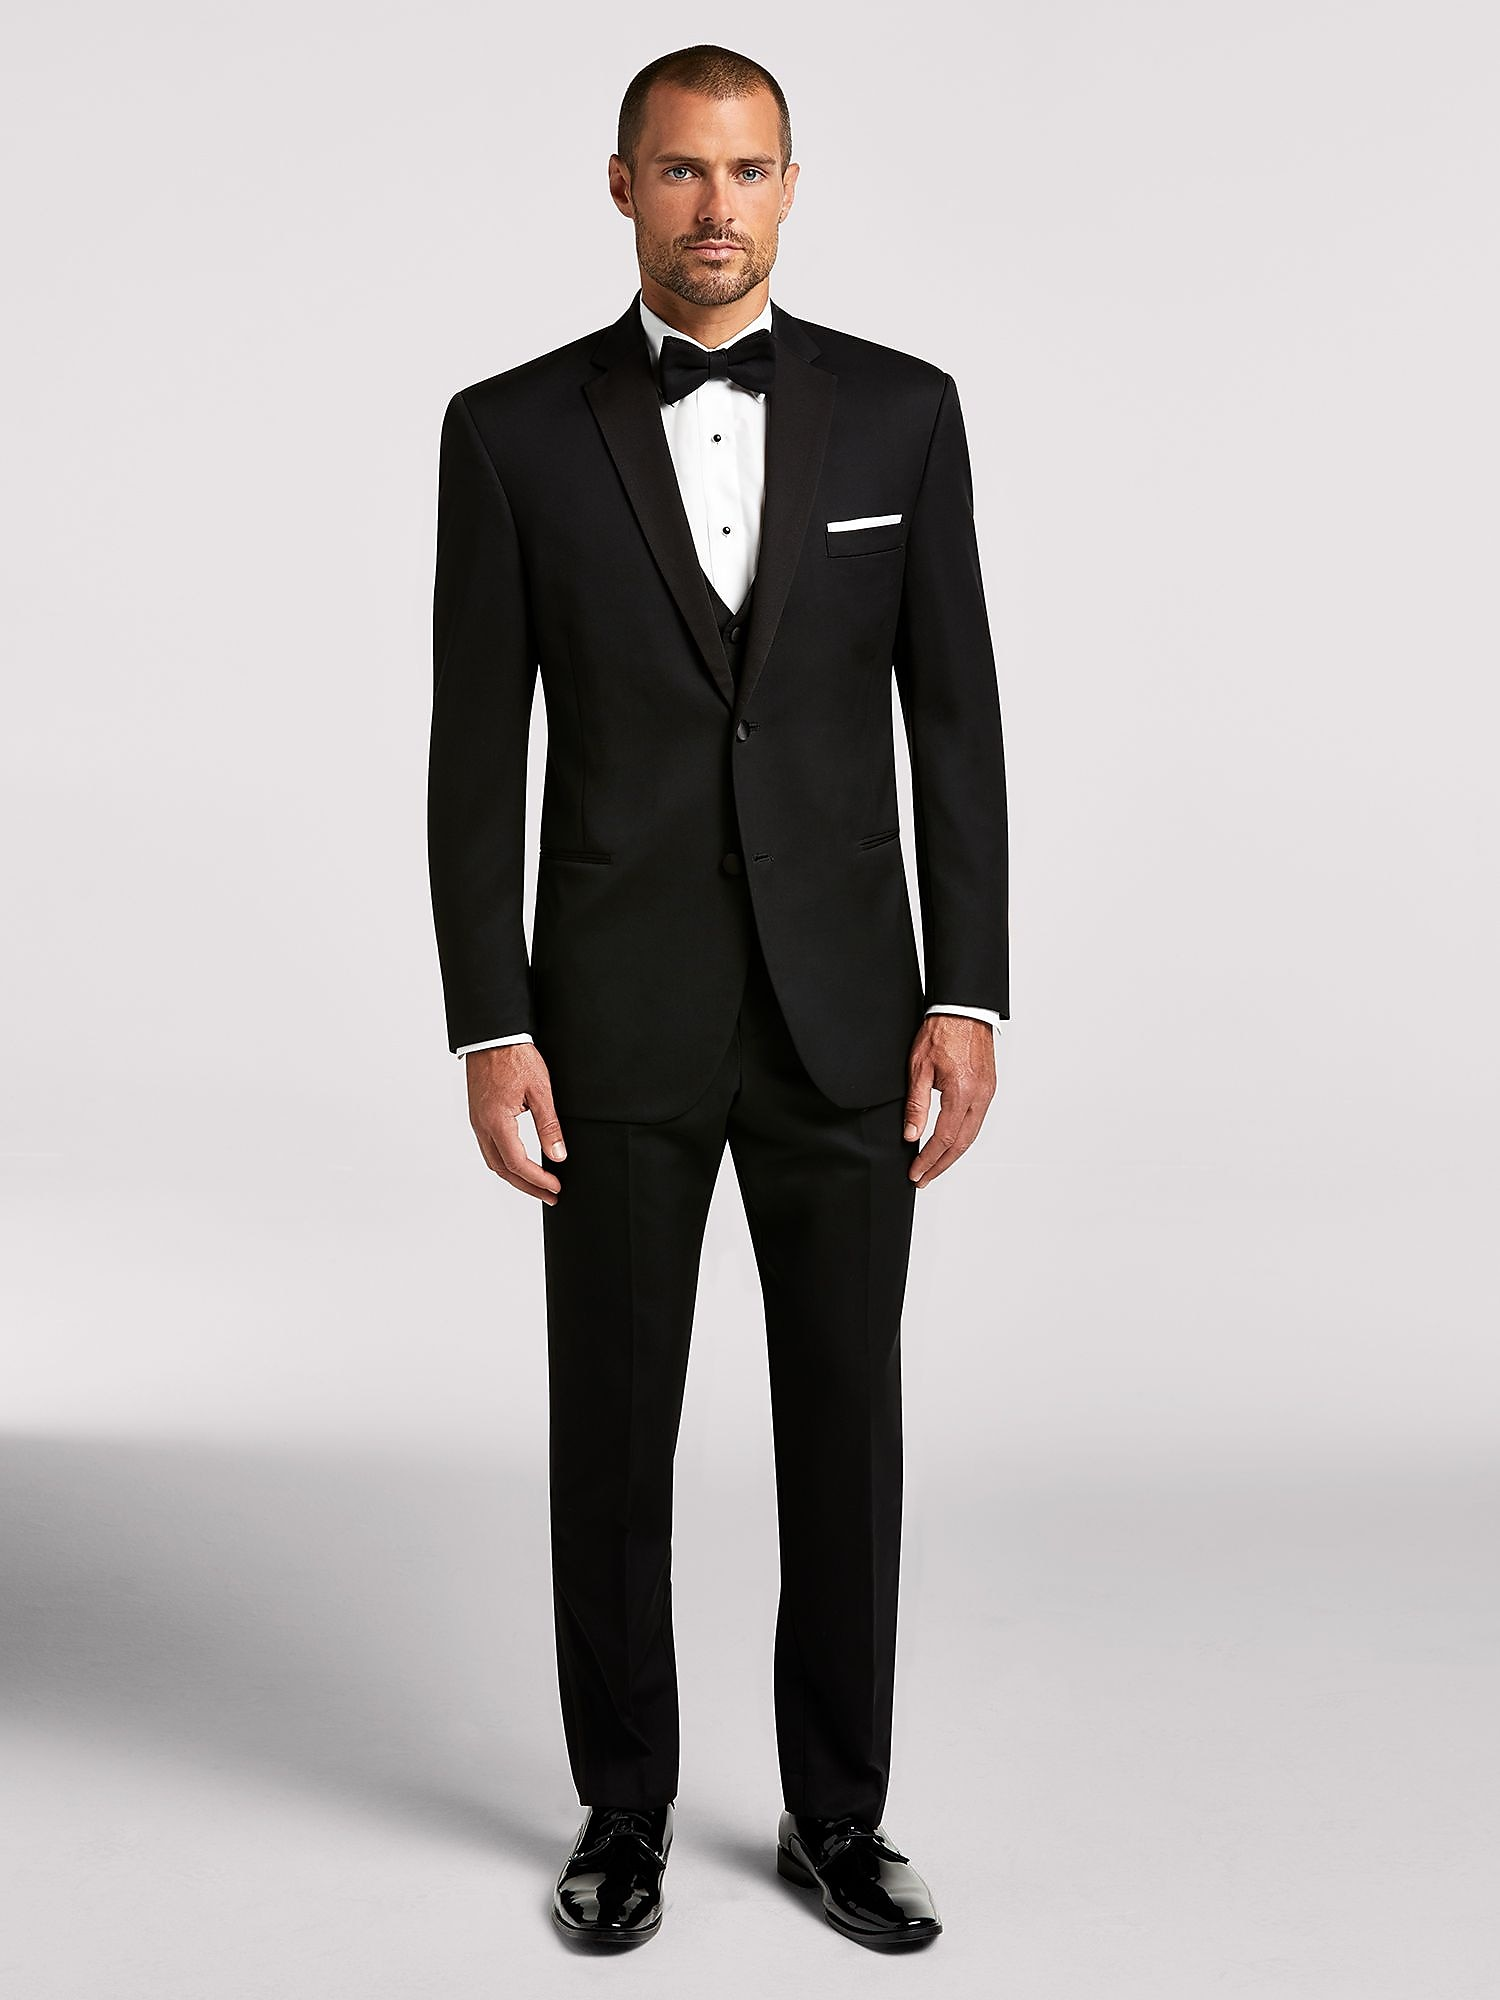 All Black Suits For Prom t4nv